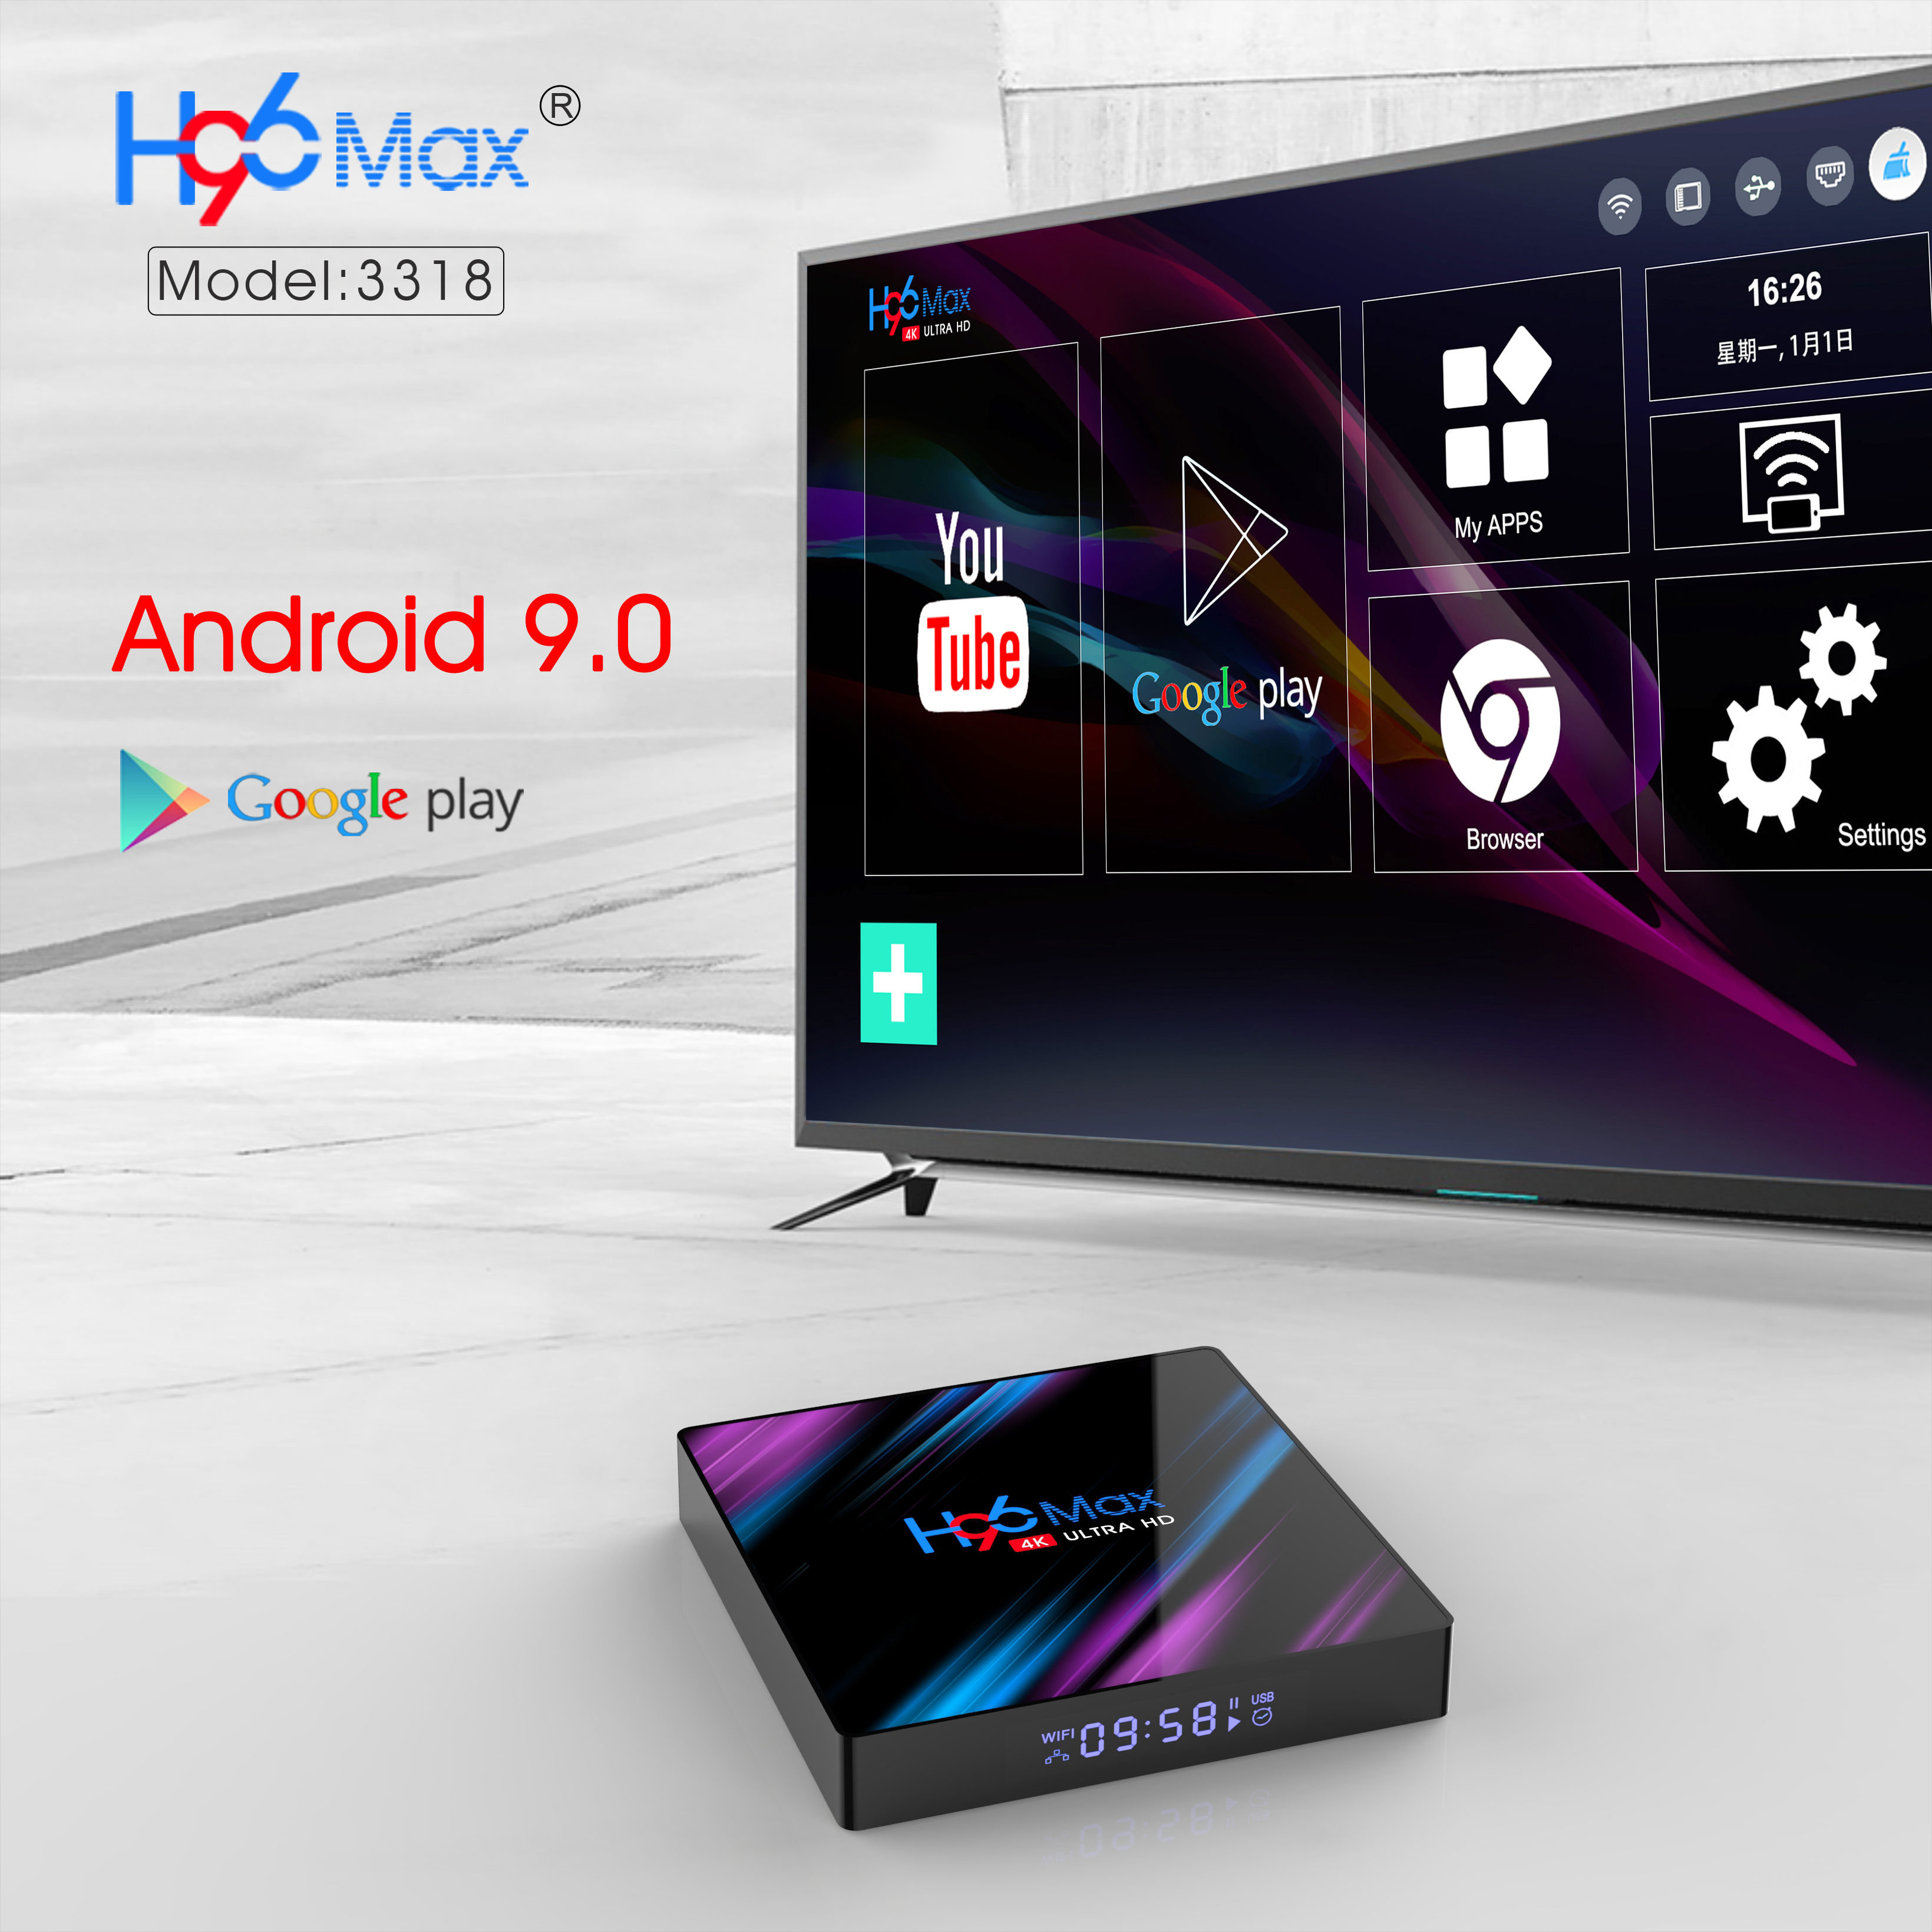 Image 5 - Smart TV Box Android 9.0 H96 MAX RK3328 WIFI 4G 32G H.265 Google Play Youtube Set Top Boxes IPTV Mini Smart Box Canada French-in Set-top Boxes from Consumer Electronics